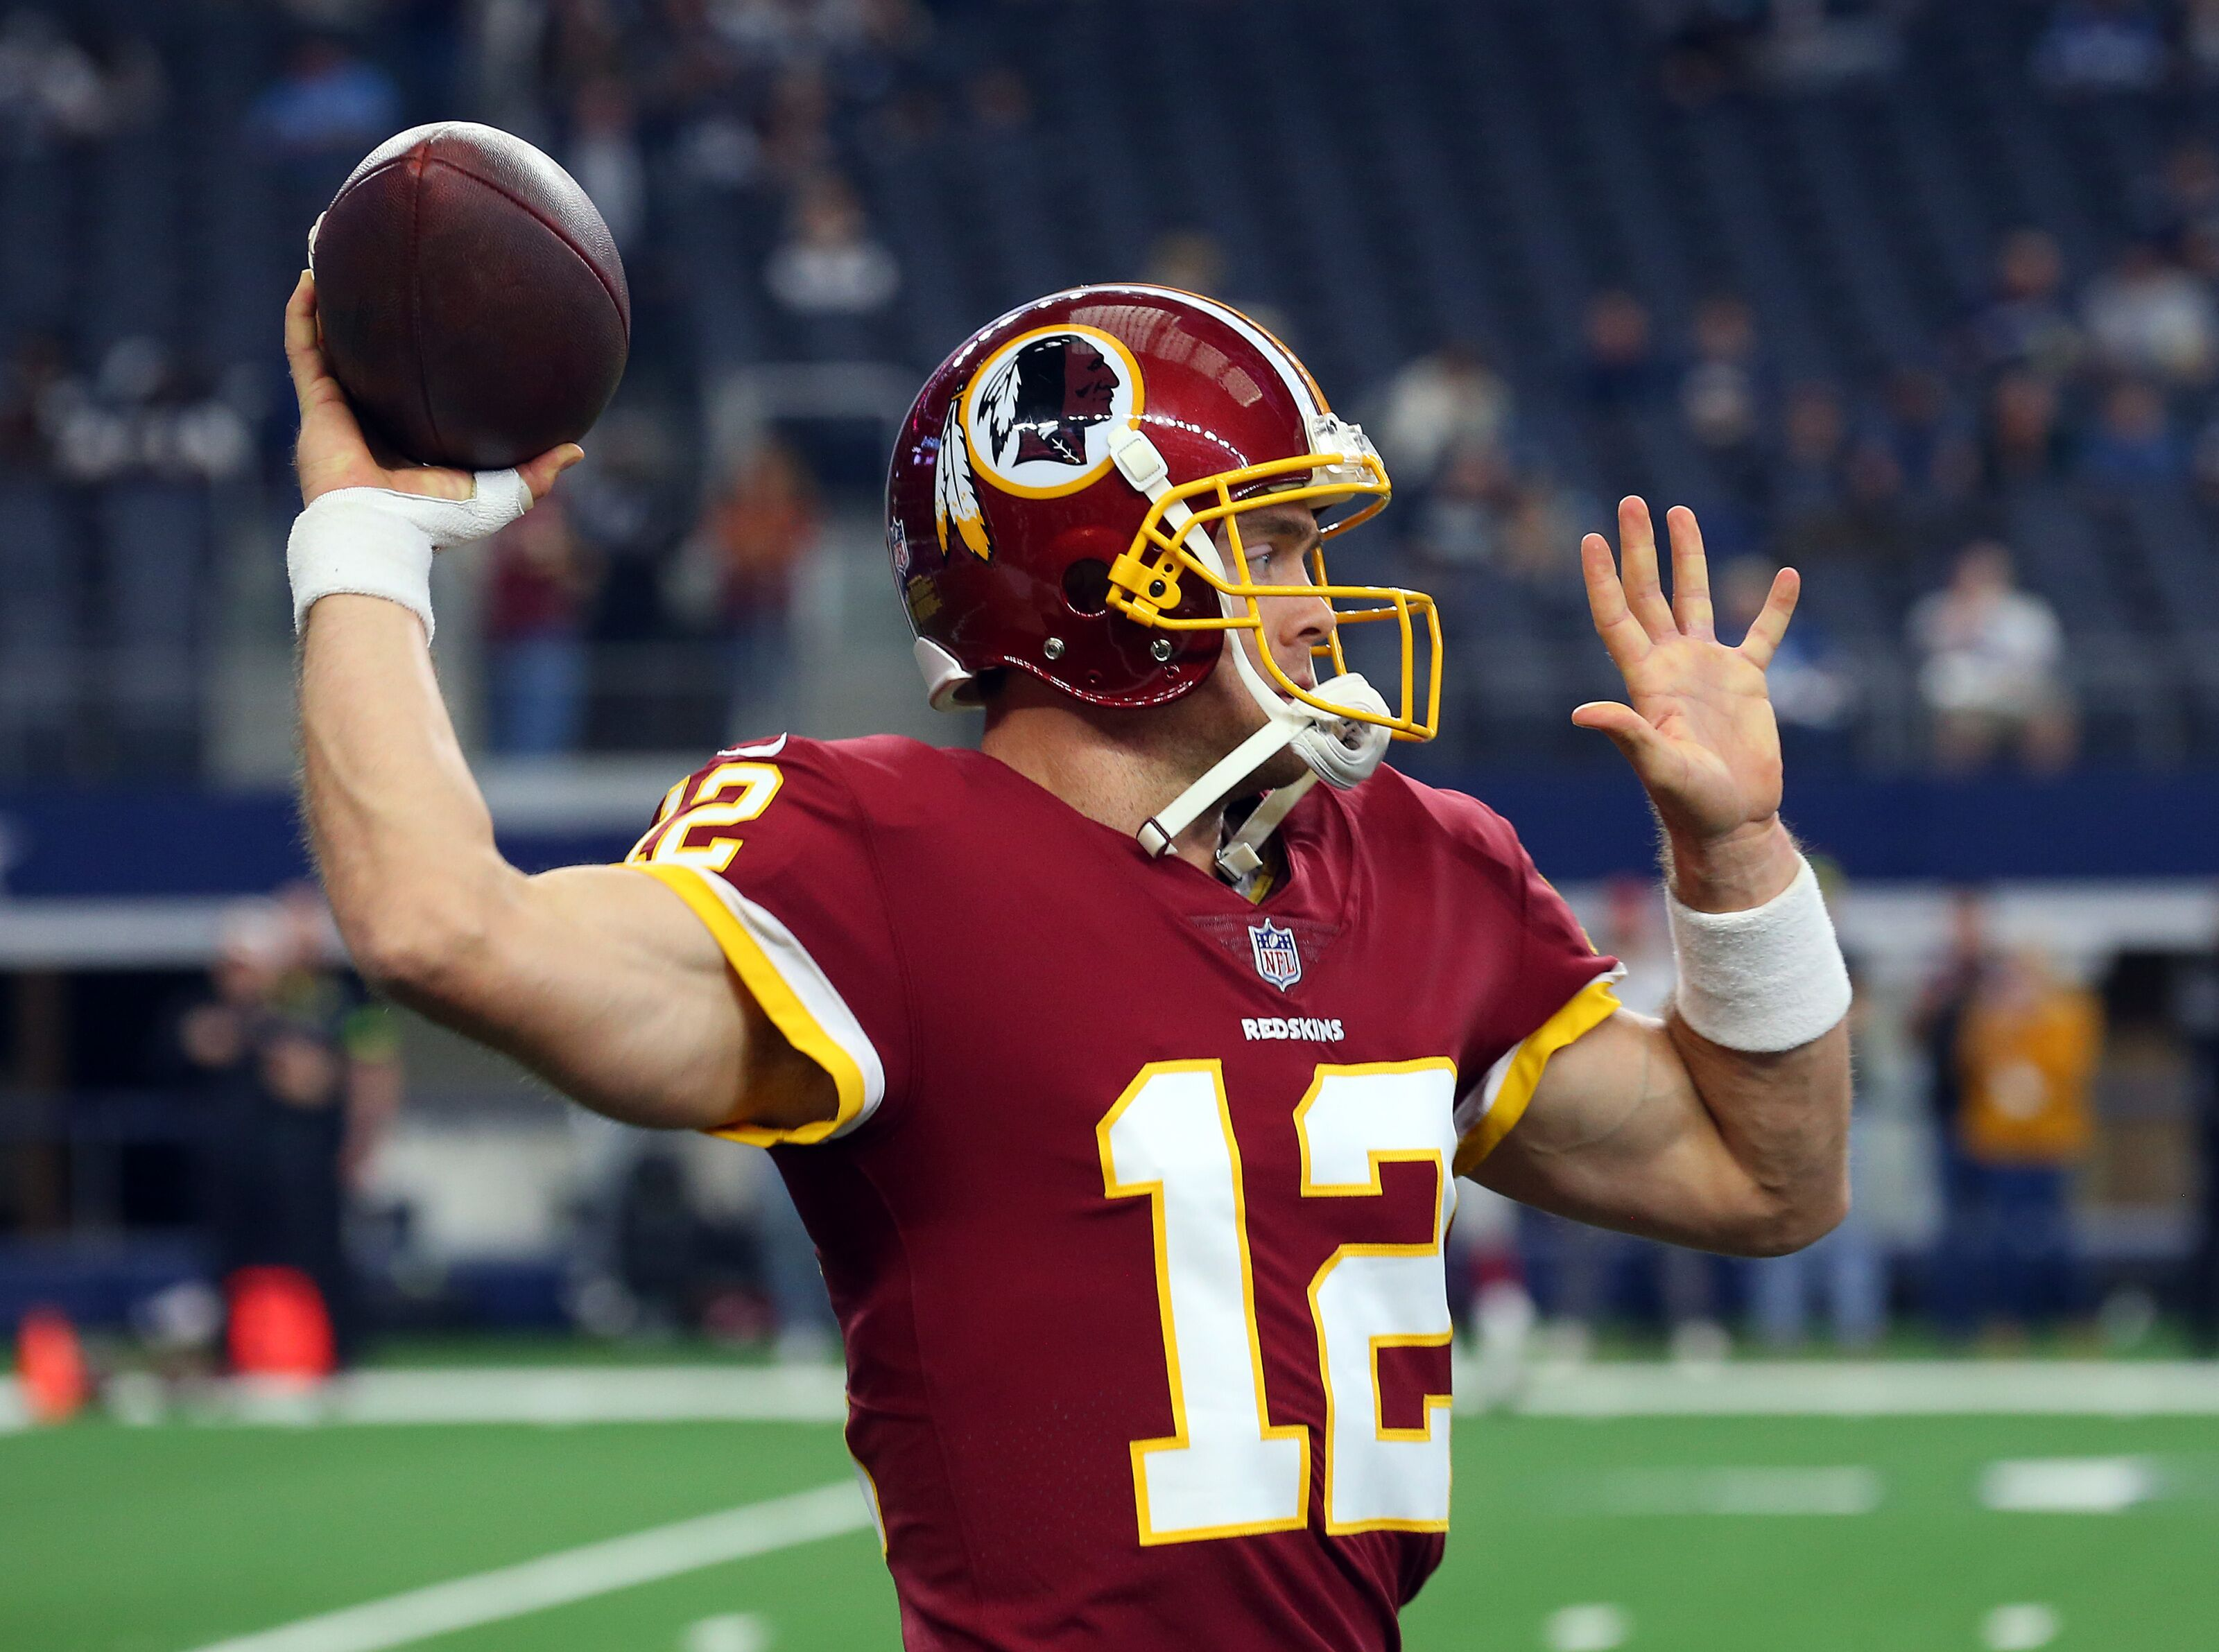 Redskins QB Colt McCoy's health in question, throwing status into doubt